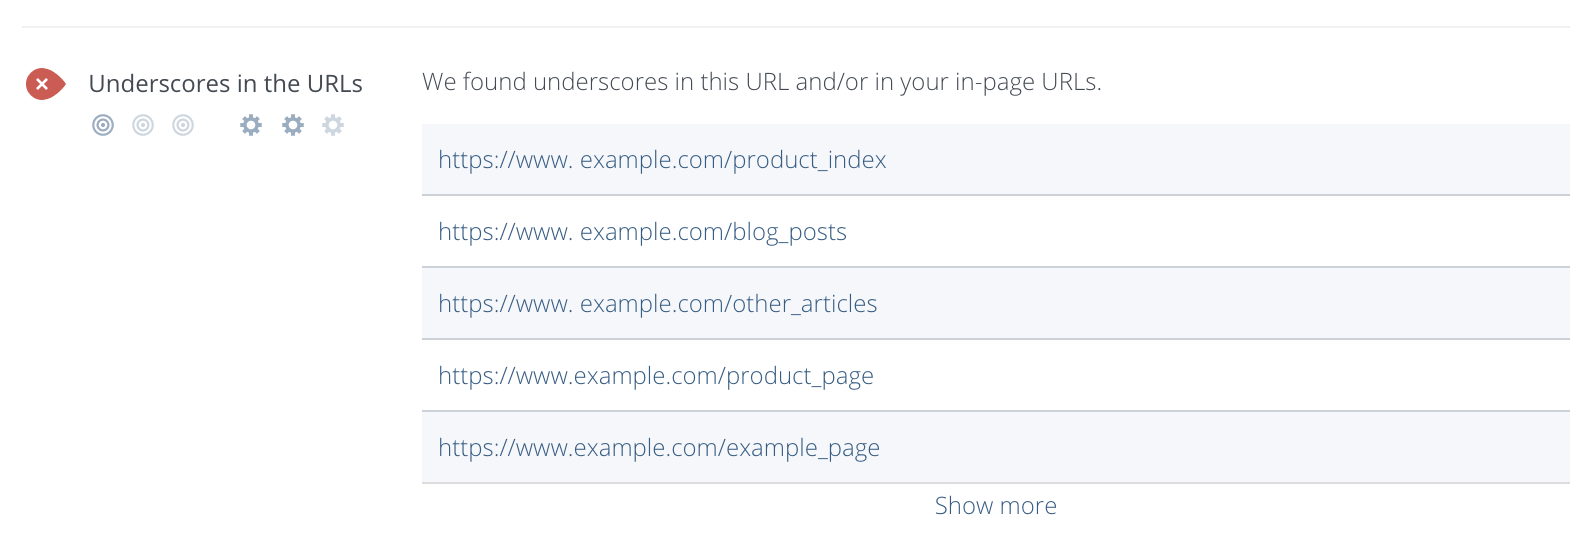 Underscores in URLs Checker